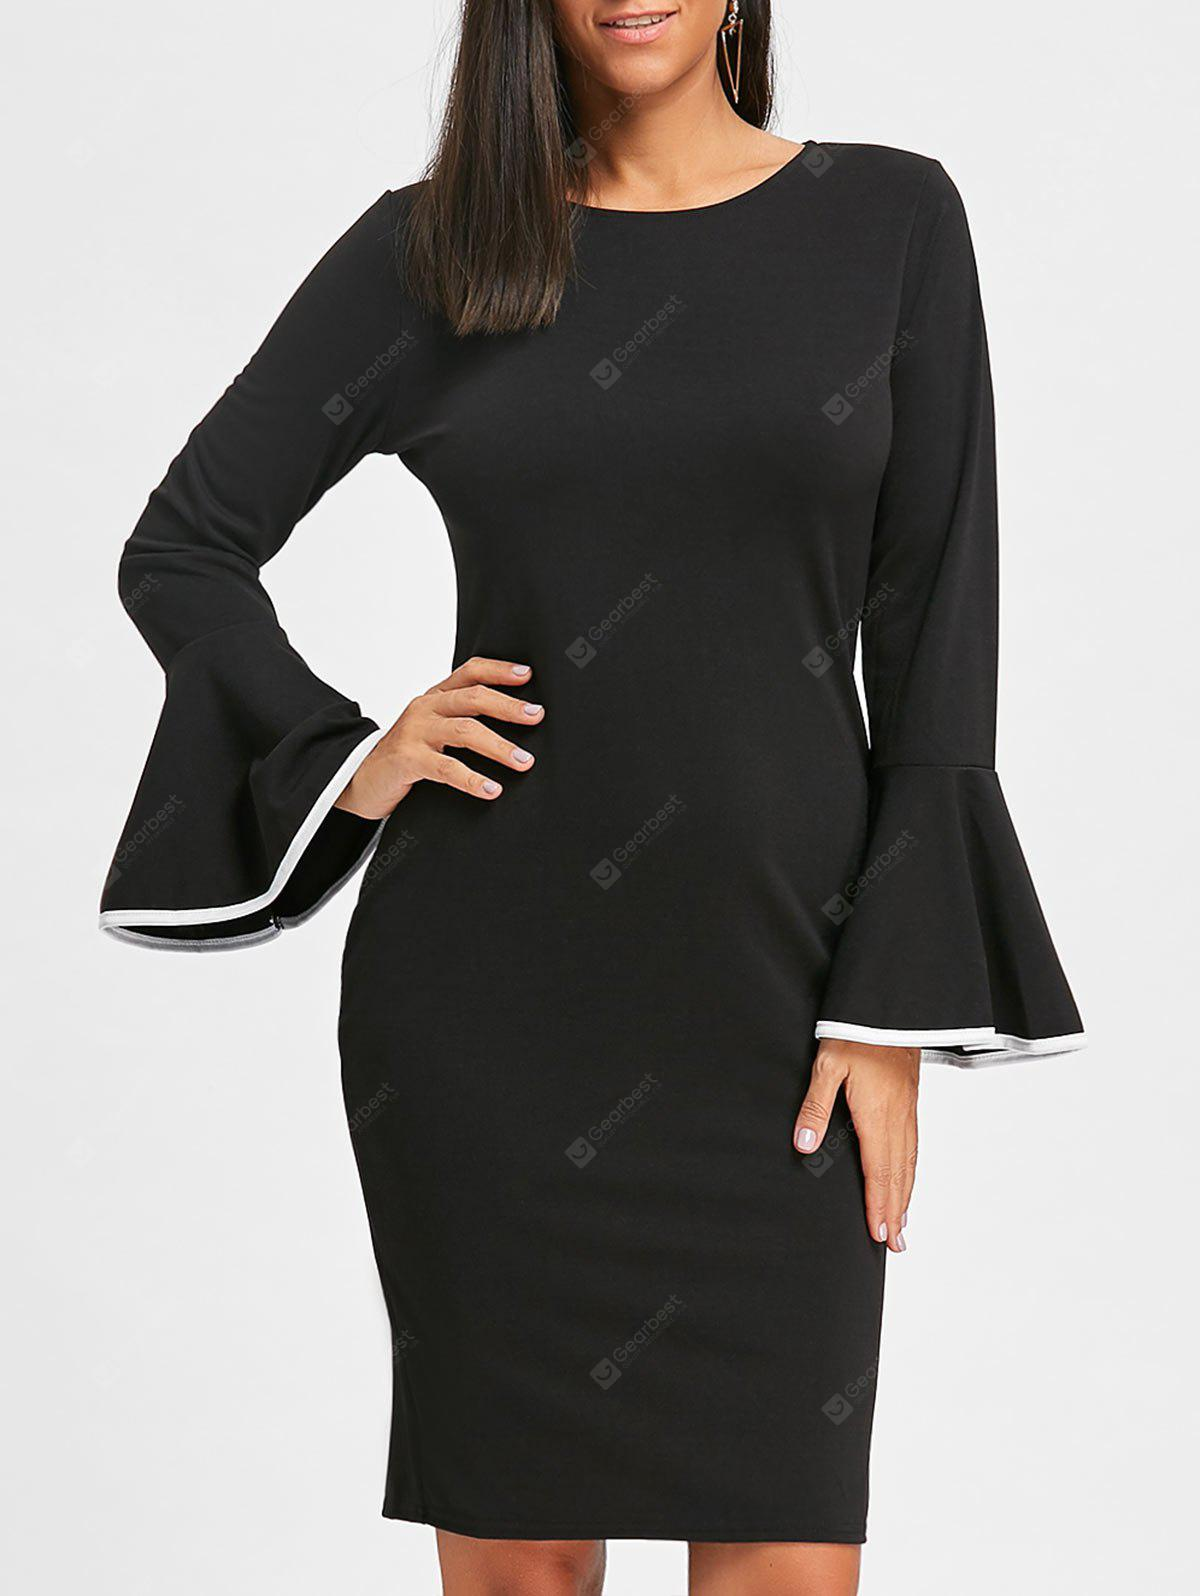 Bell Sleeve Bodycon Party Dress